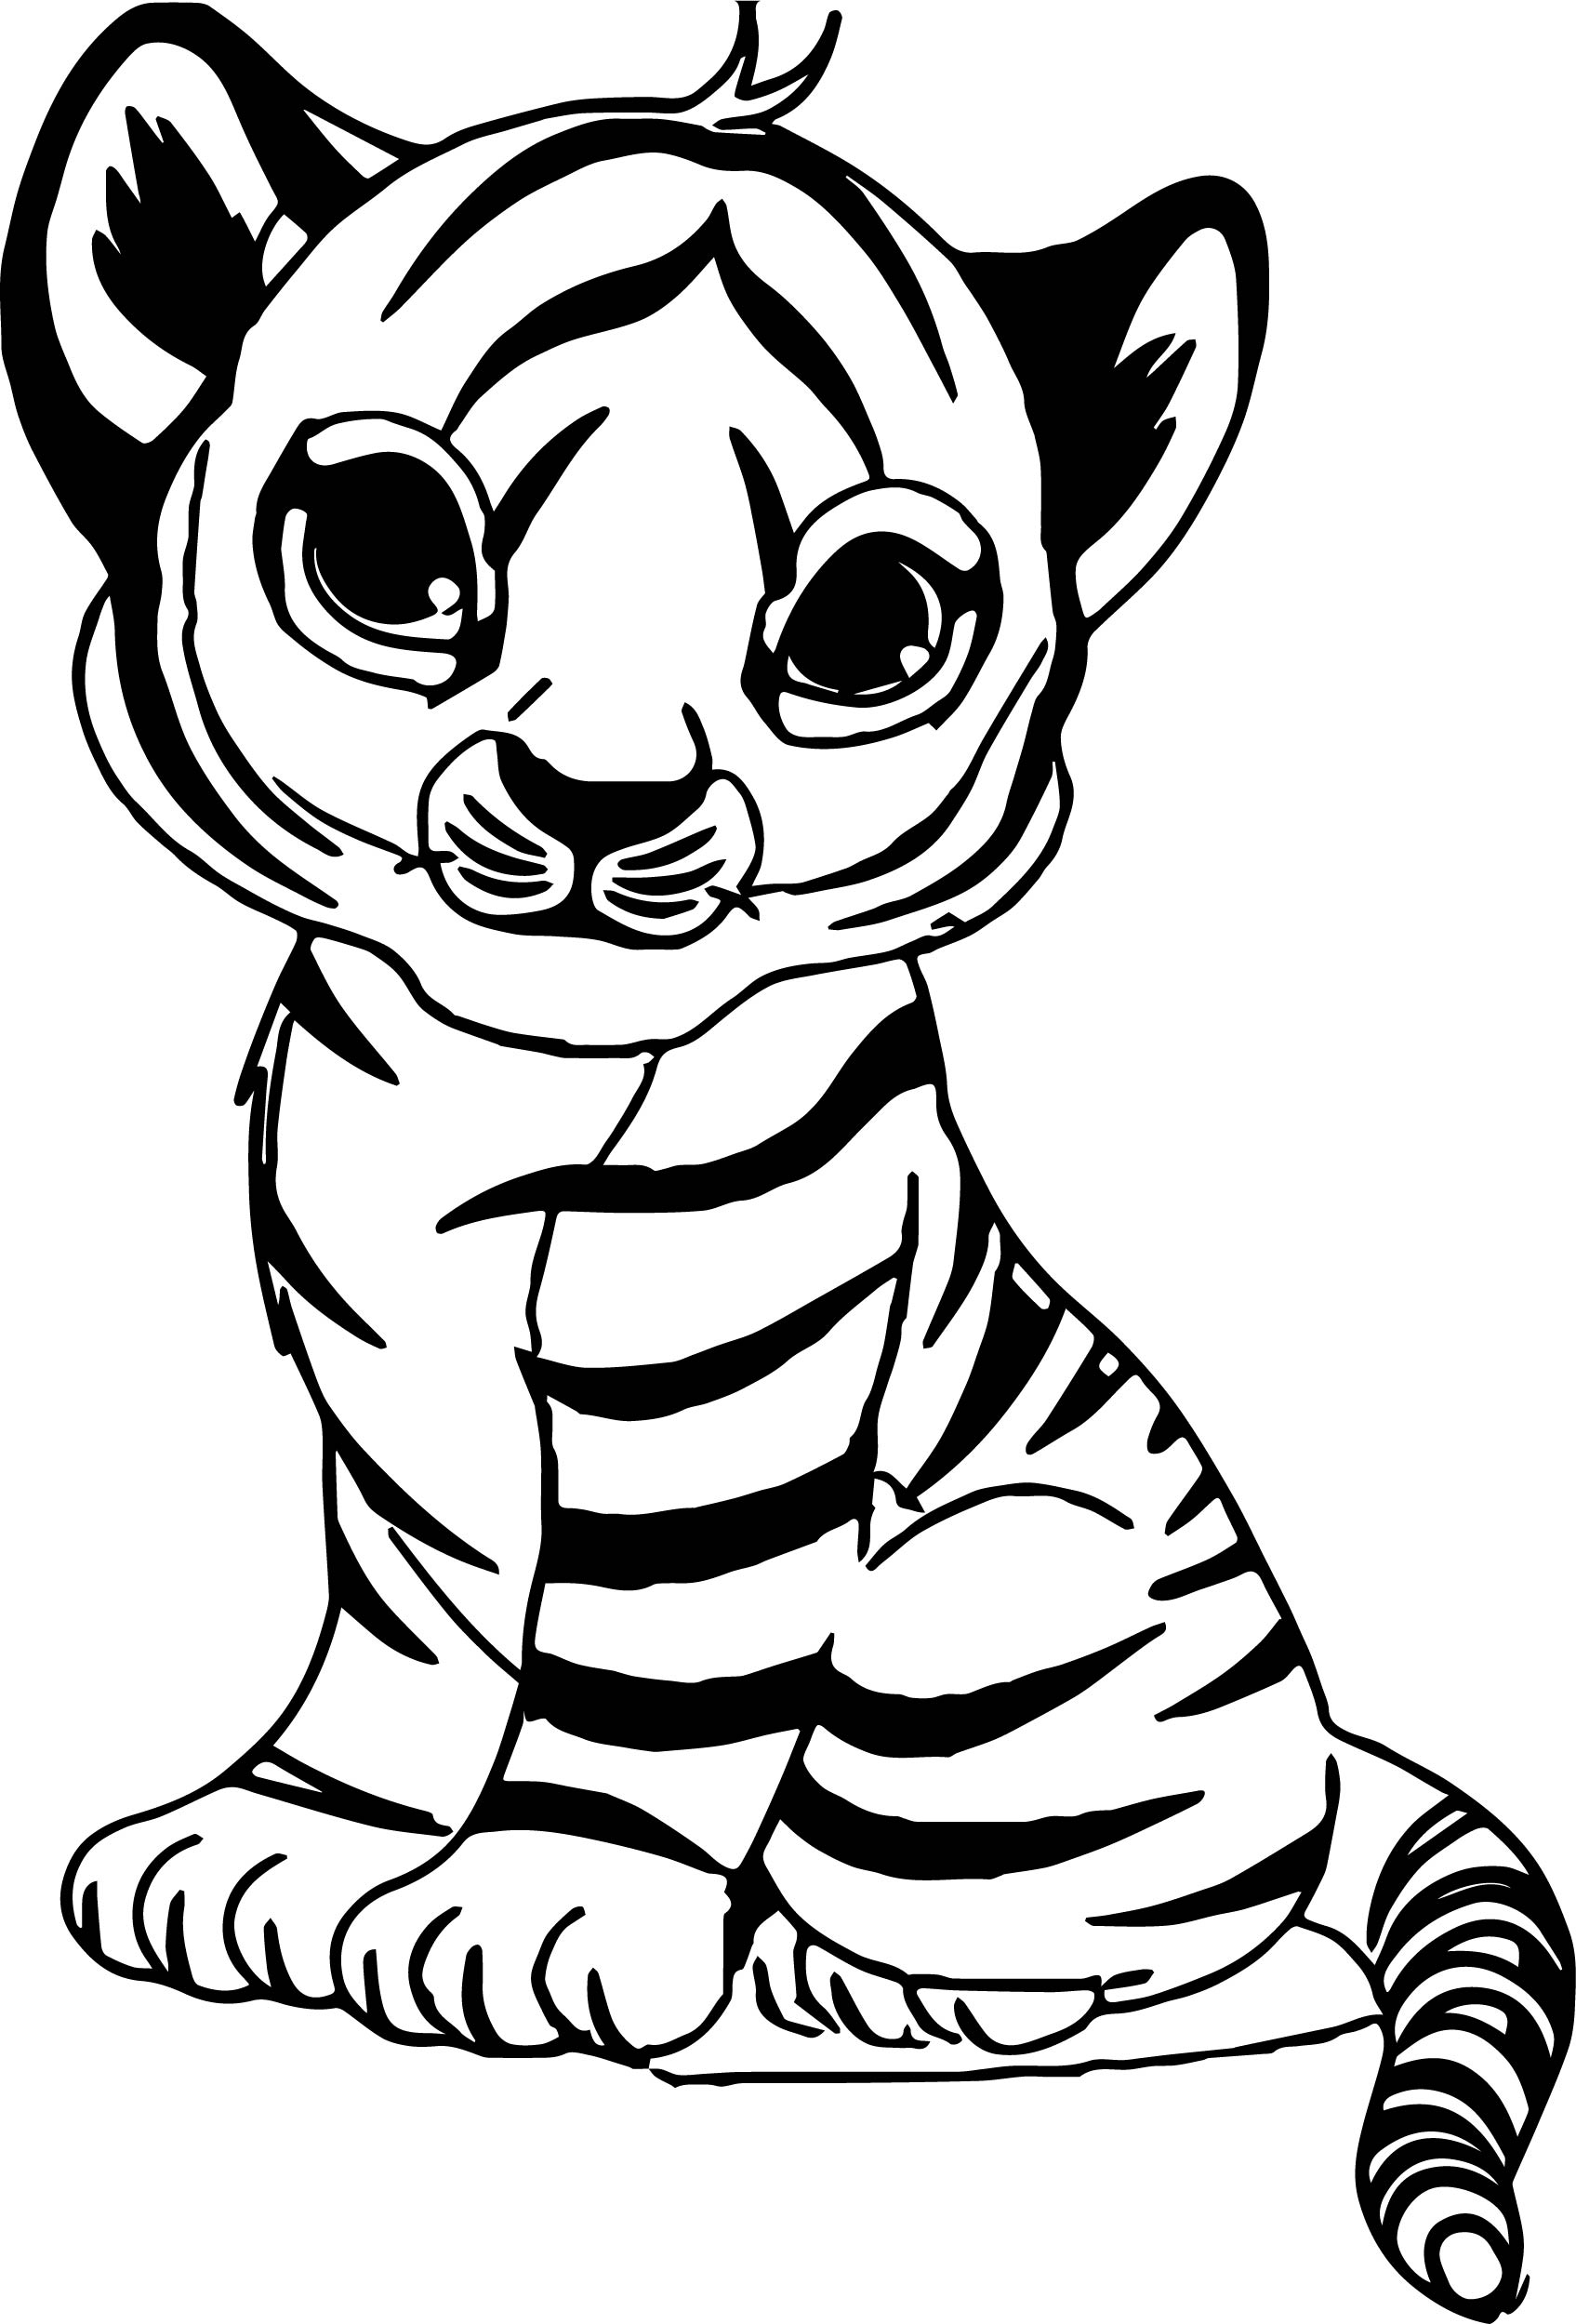 tiger colouring pictures tiger coloring pages at getdrawings free download colouring tiger pictures